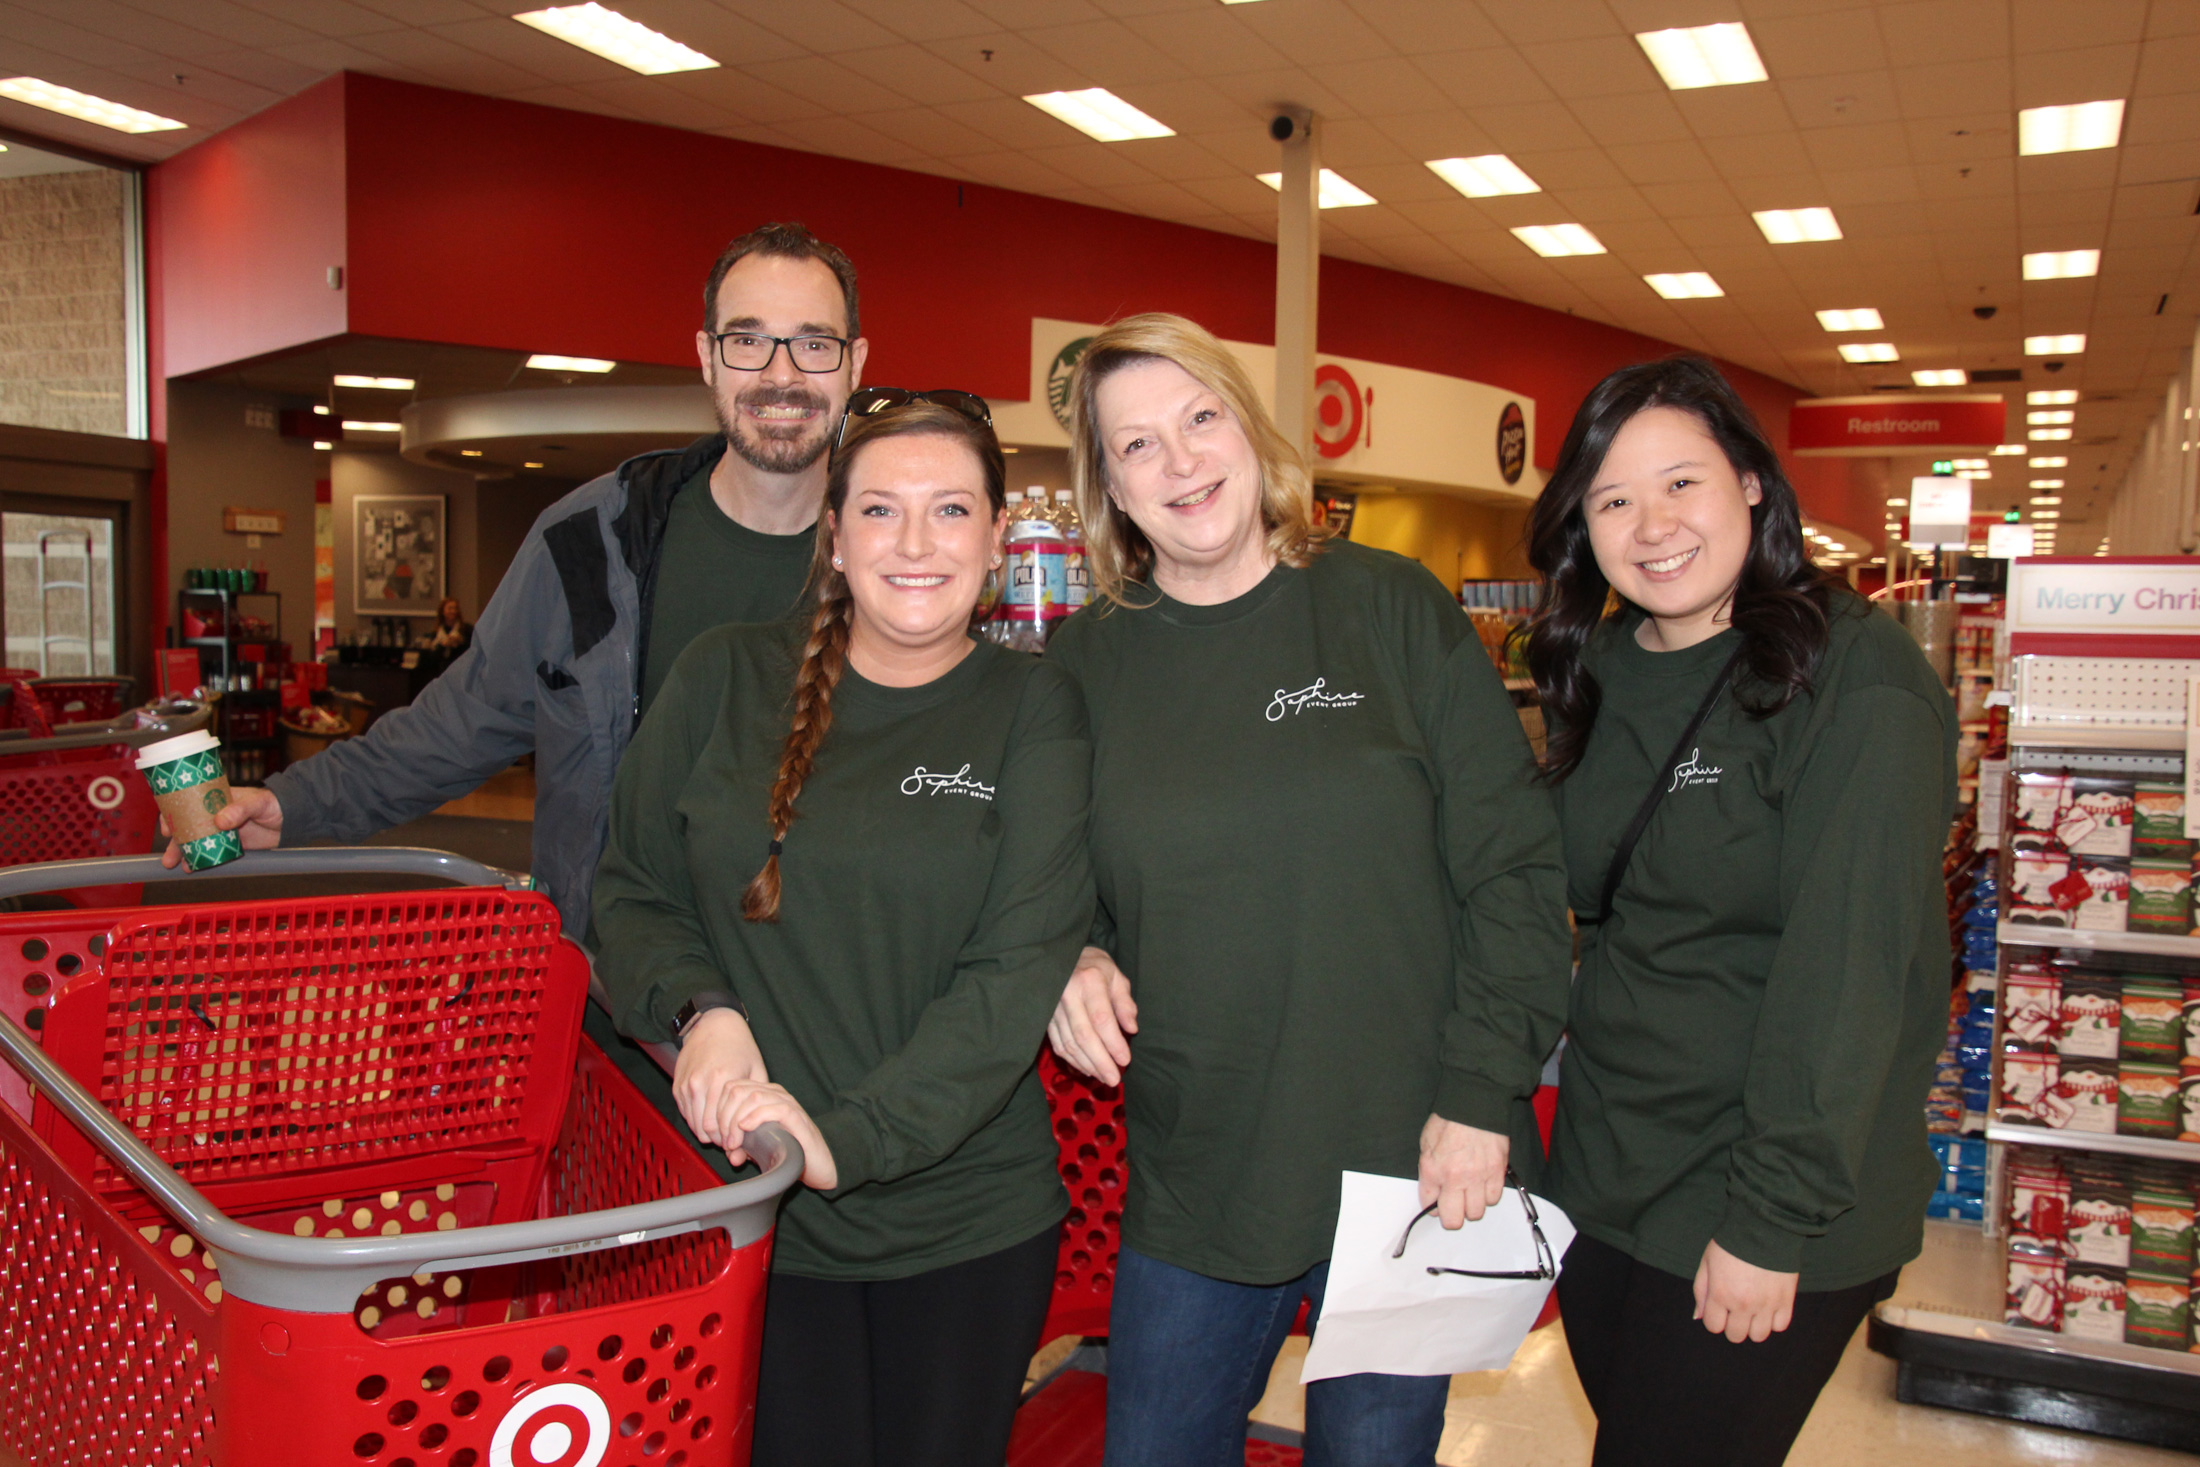 SEG staff poses at Target before shopping